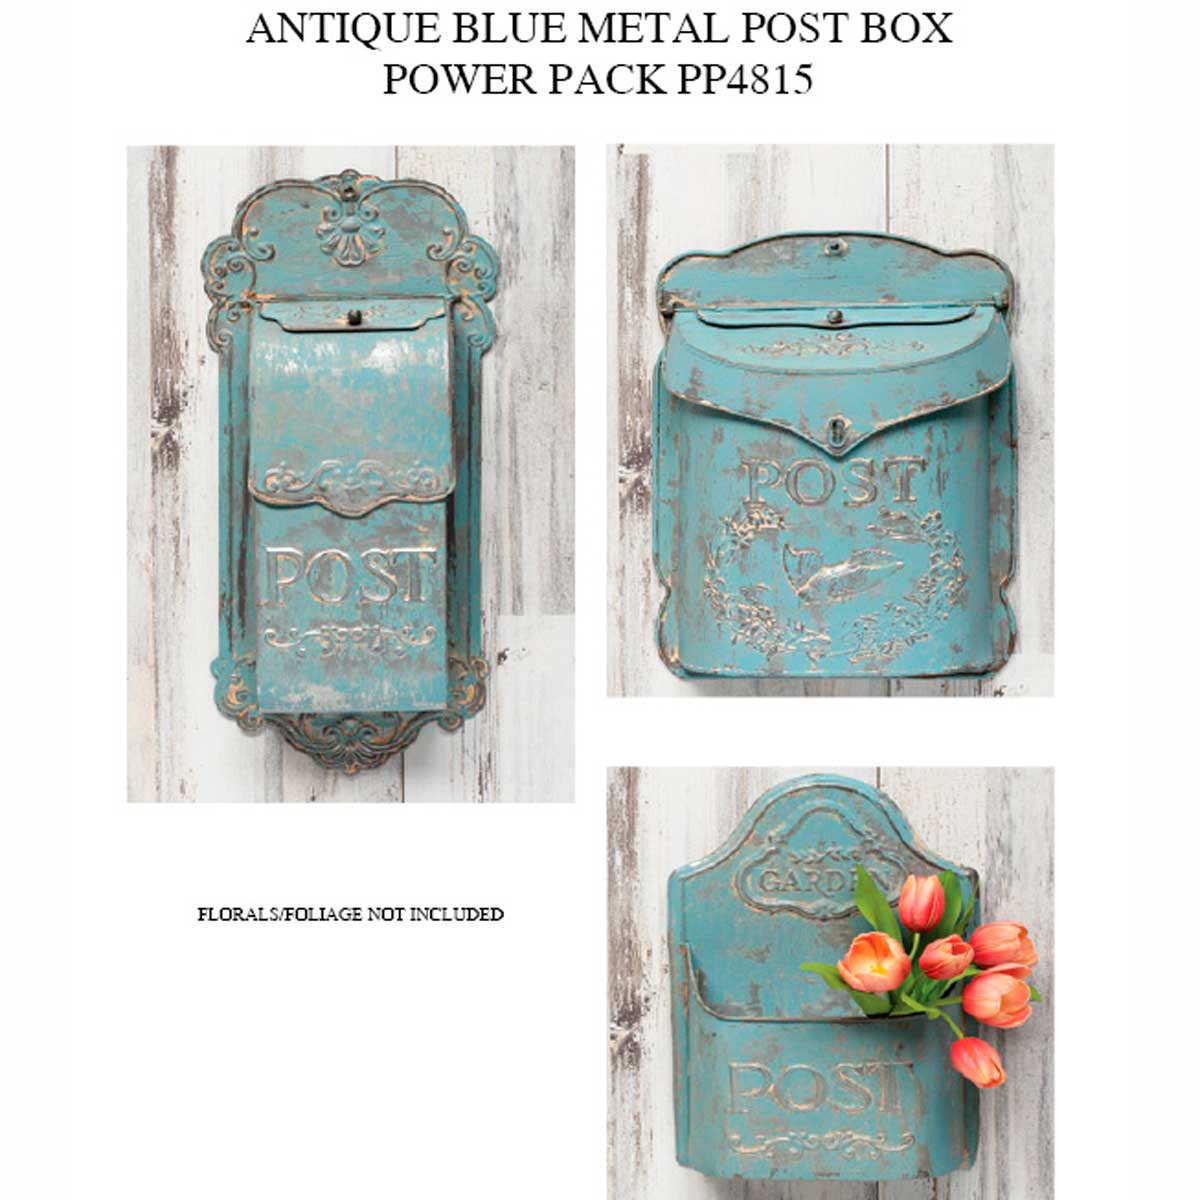 ANTIQUE BLUE METAL POSTBOX POWER PACK 3 UNITS